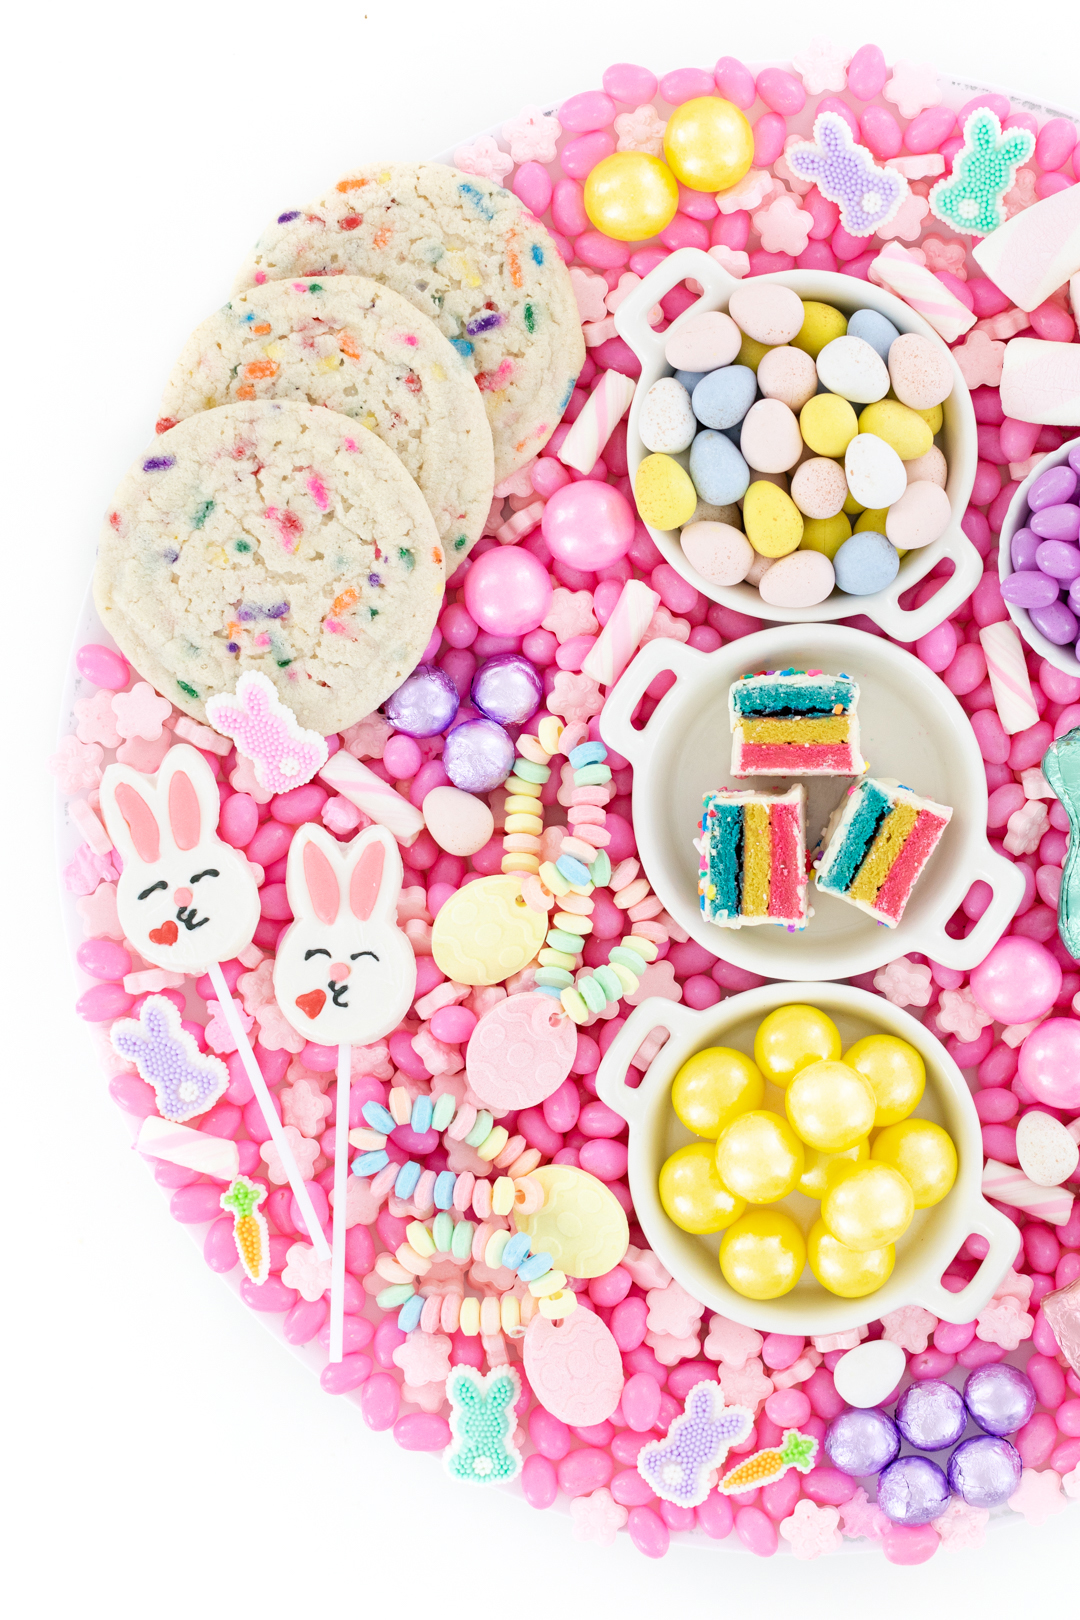 pretty easter candy tray with desserts and candies that are pastel colored